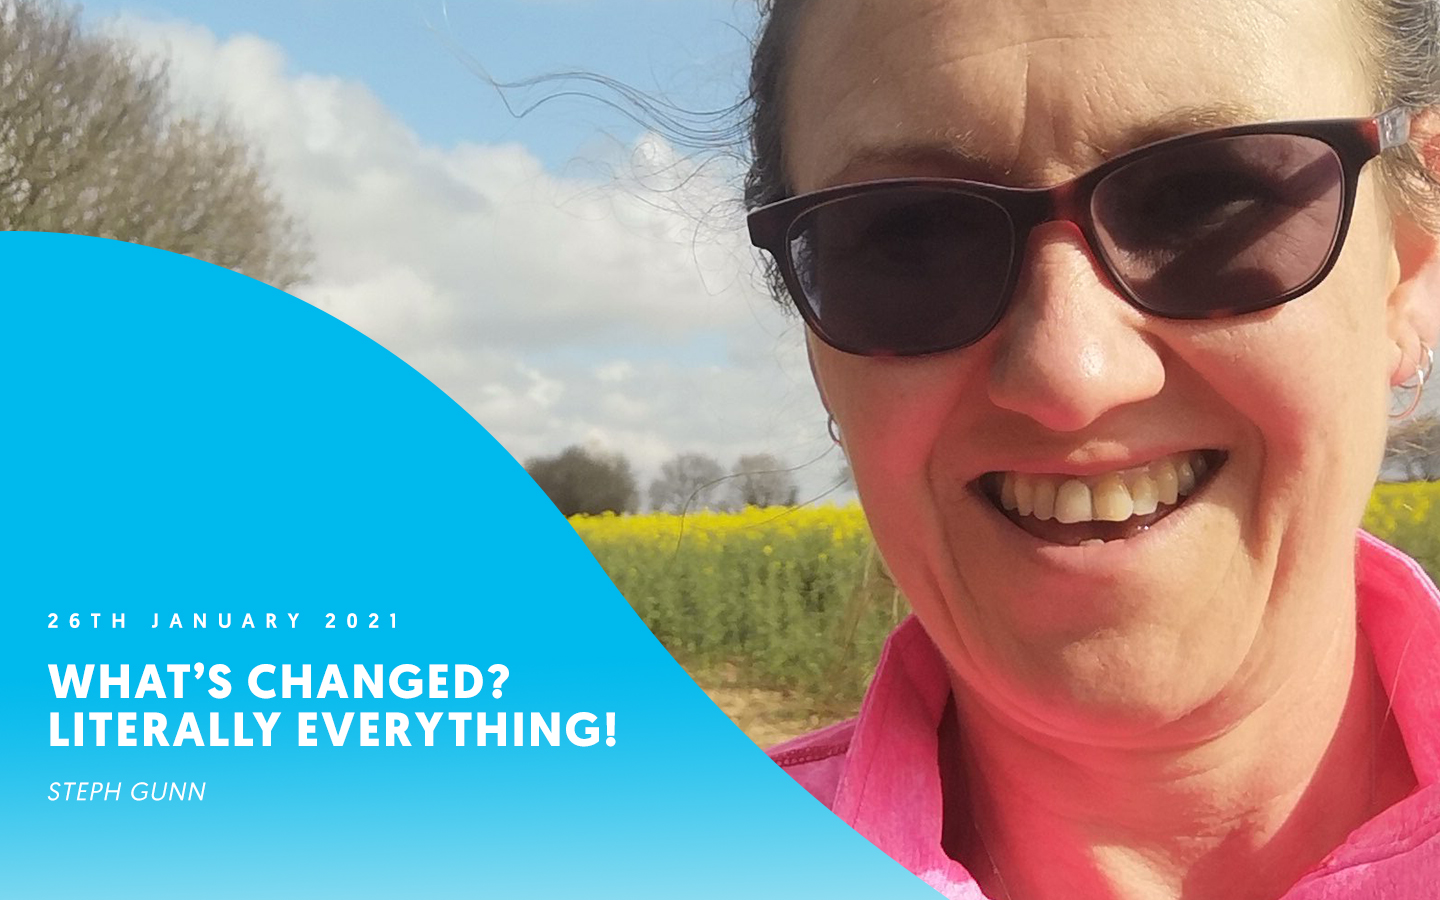 What's changed? Literally everything! – Steph Gunn